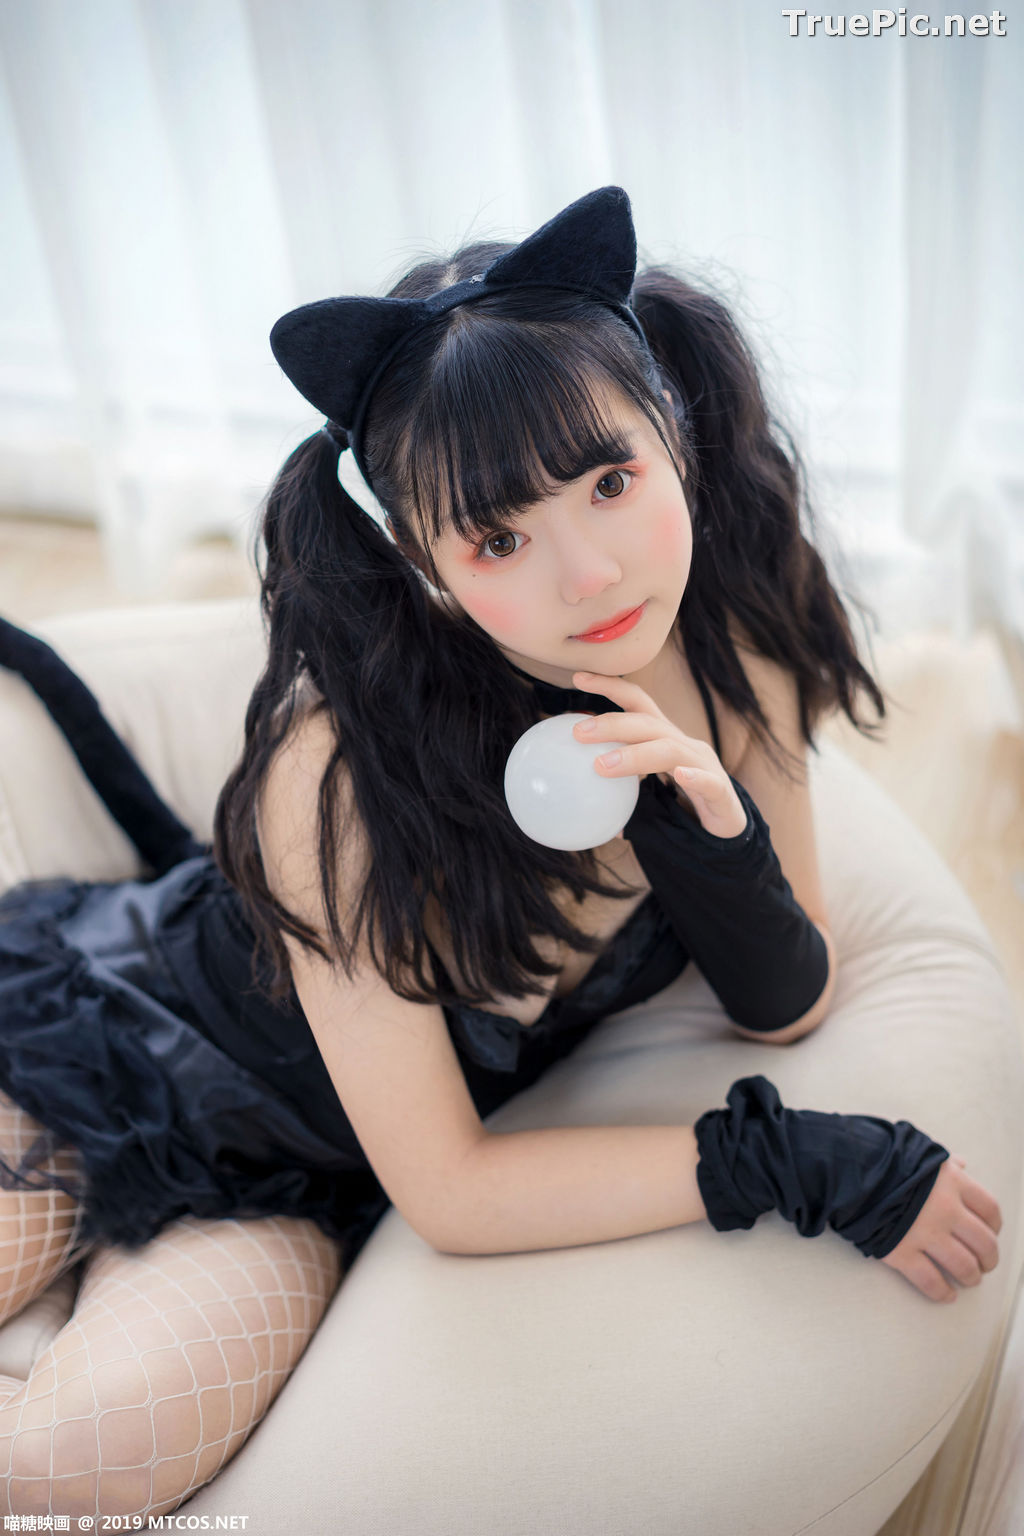 Image [MTCos] 喵糖映画 Vol.045 – Chinese Cute Model – Black Cat Girl - TruePic.net - Picture-7